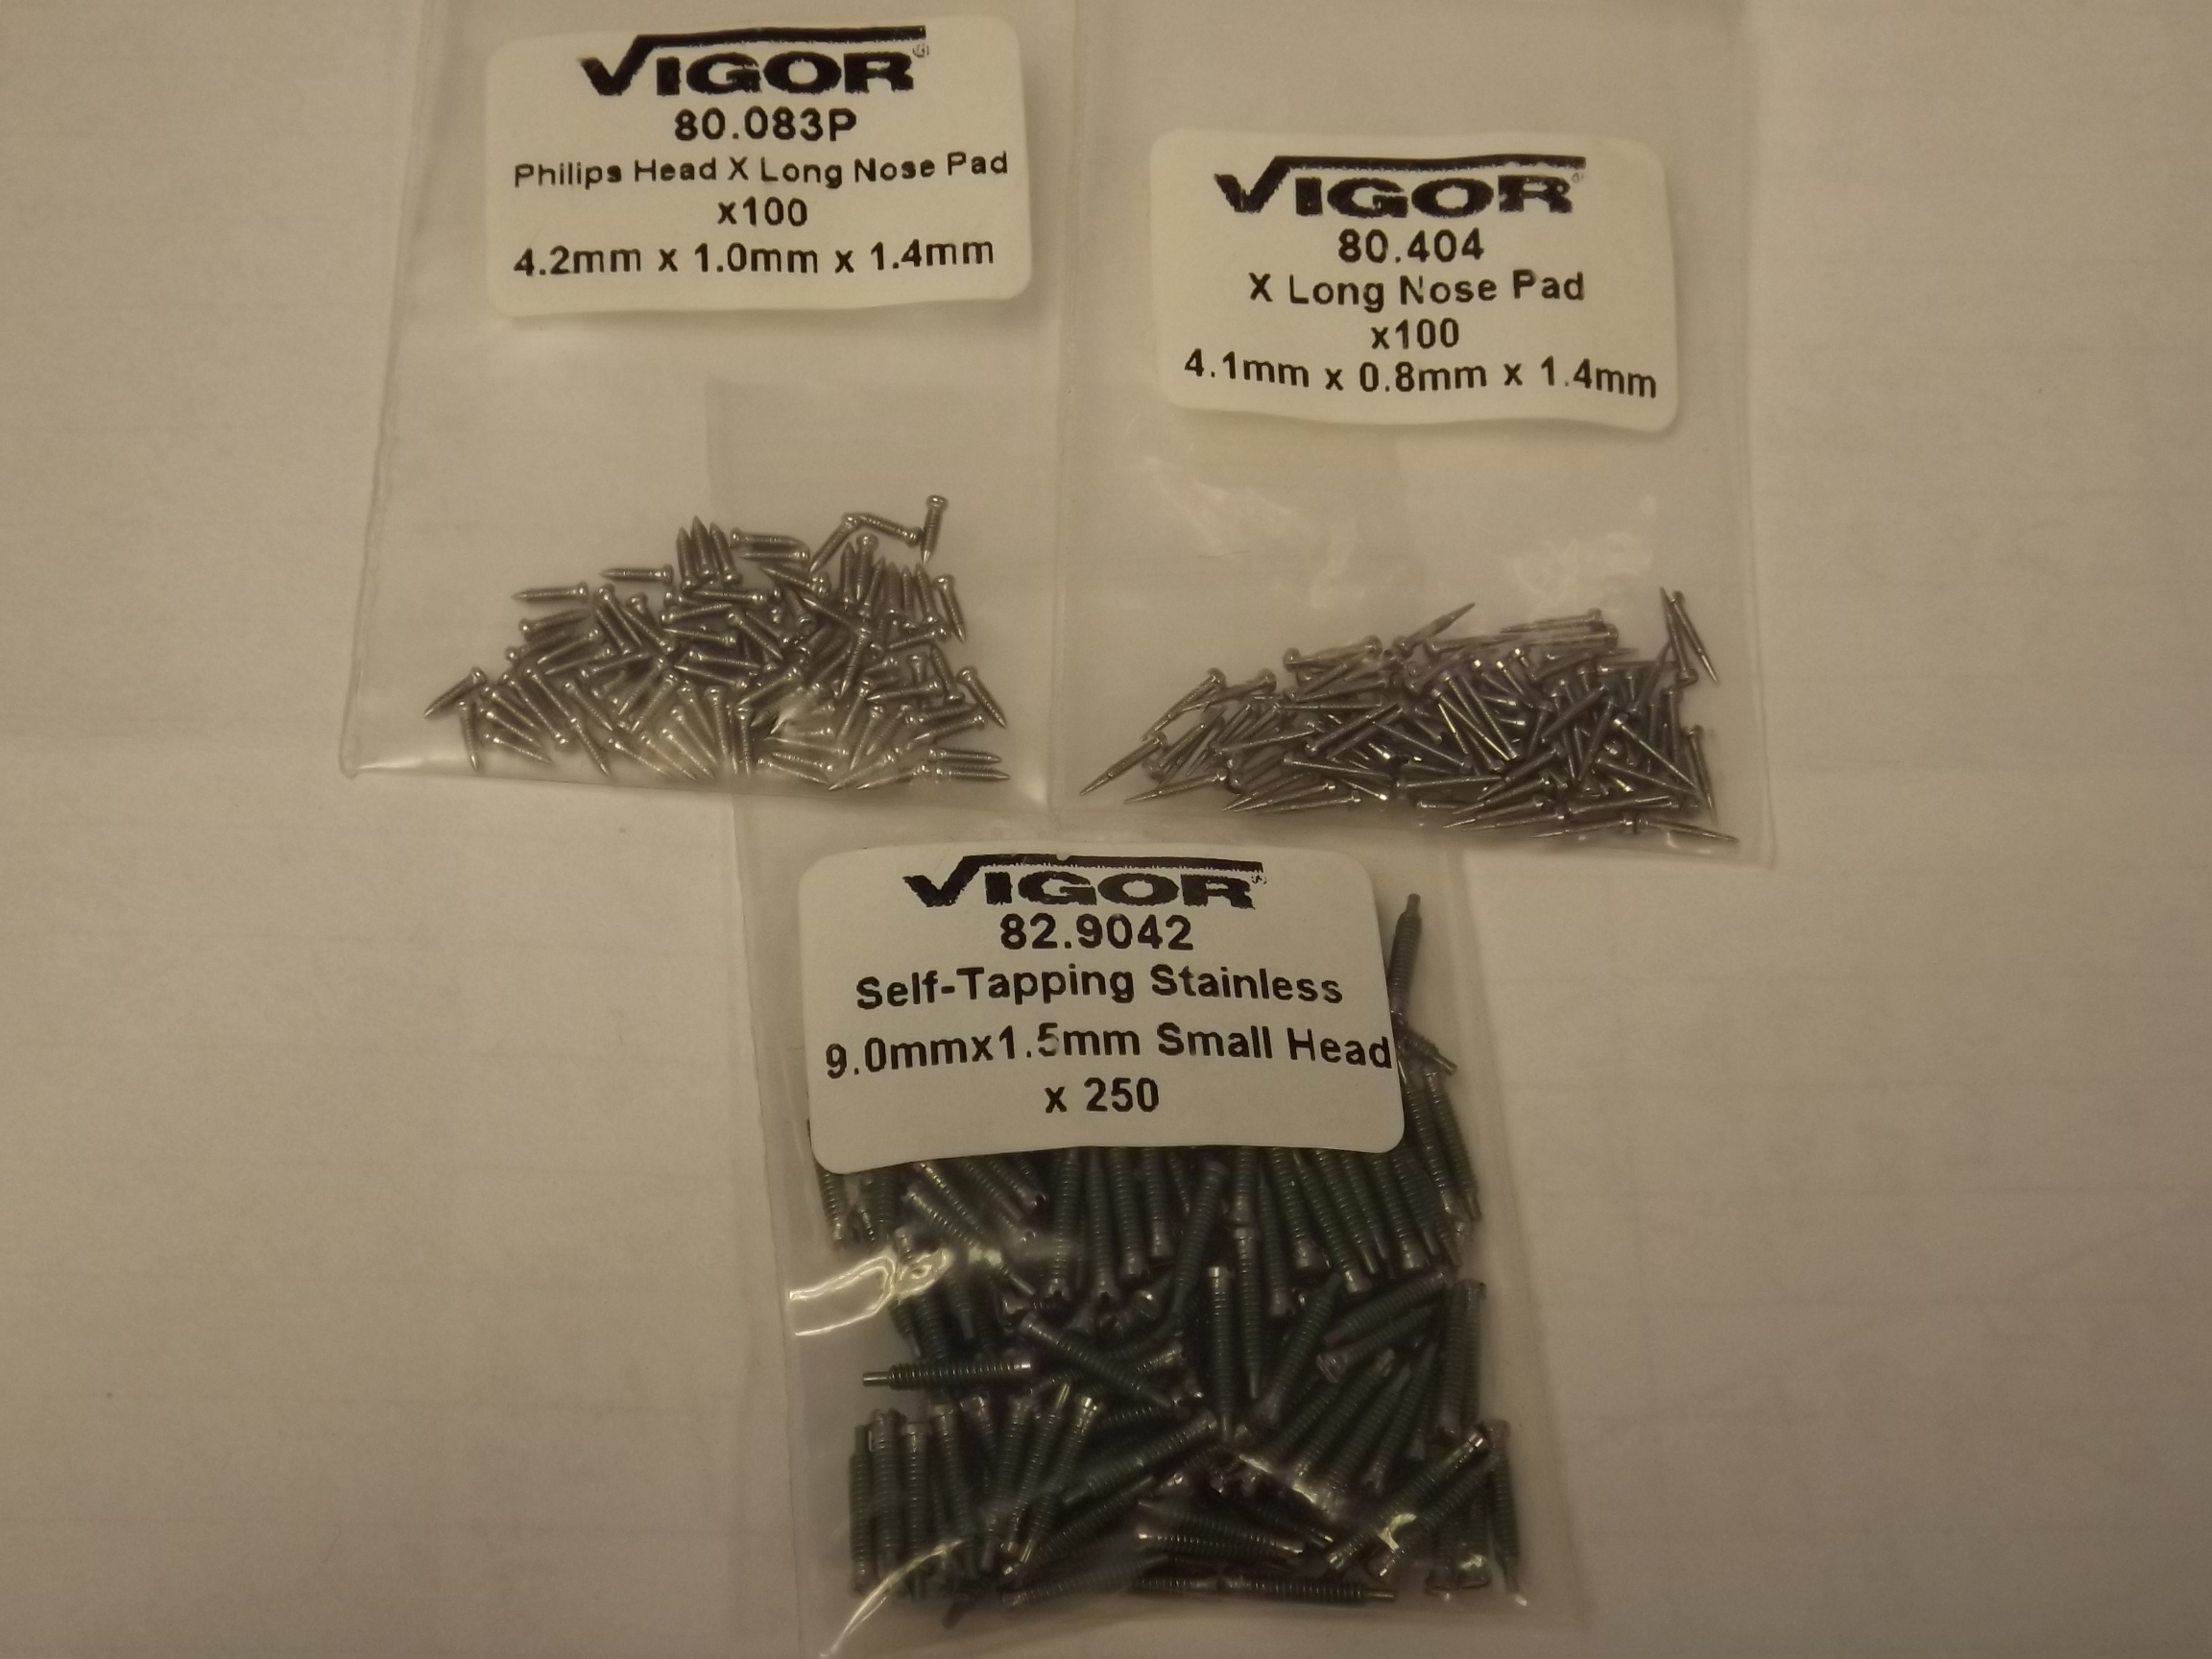 82.9042 Optical--Self tapping Stainless Small Head Screws- 9.0 mm x 1.5mm- pkg of 250 - Vigor/Grobet- 1 Only!